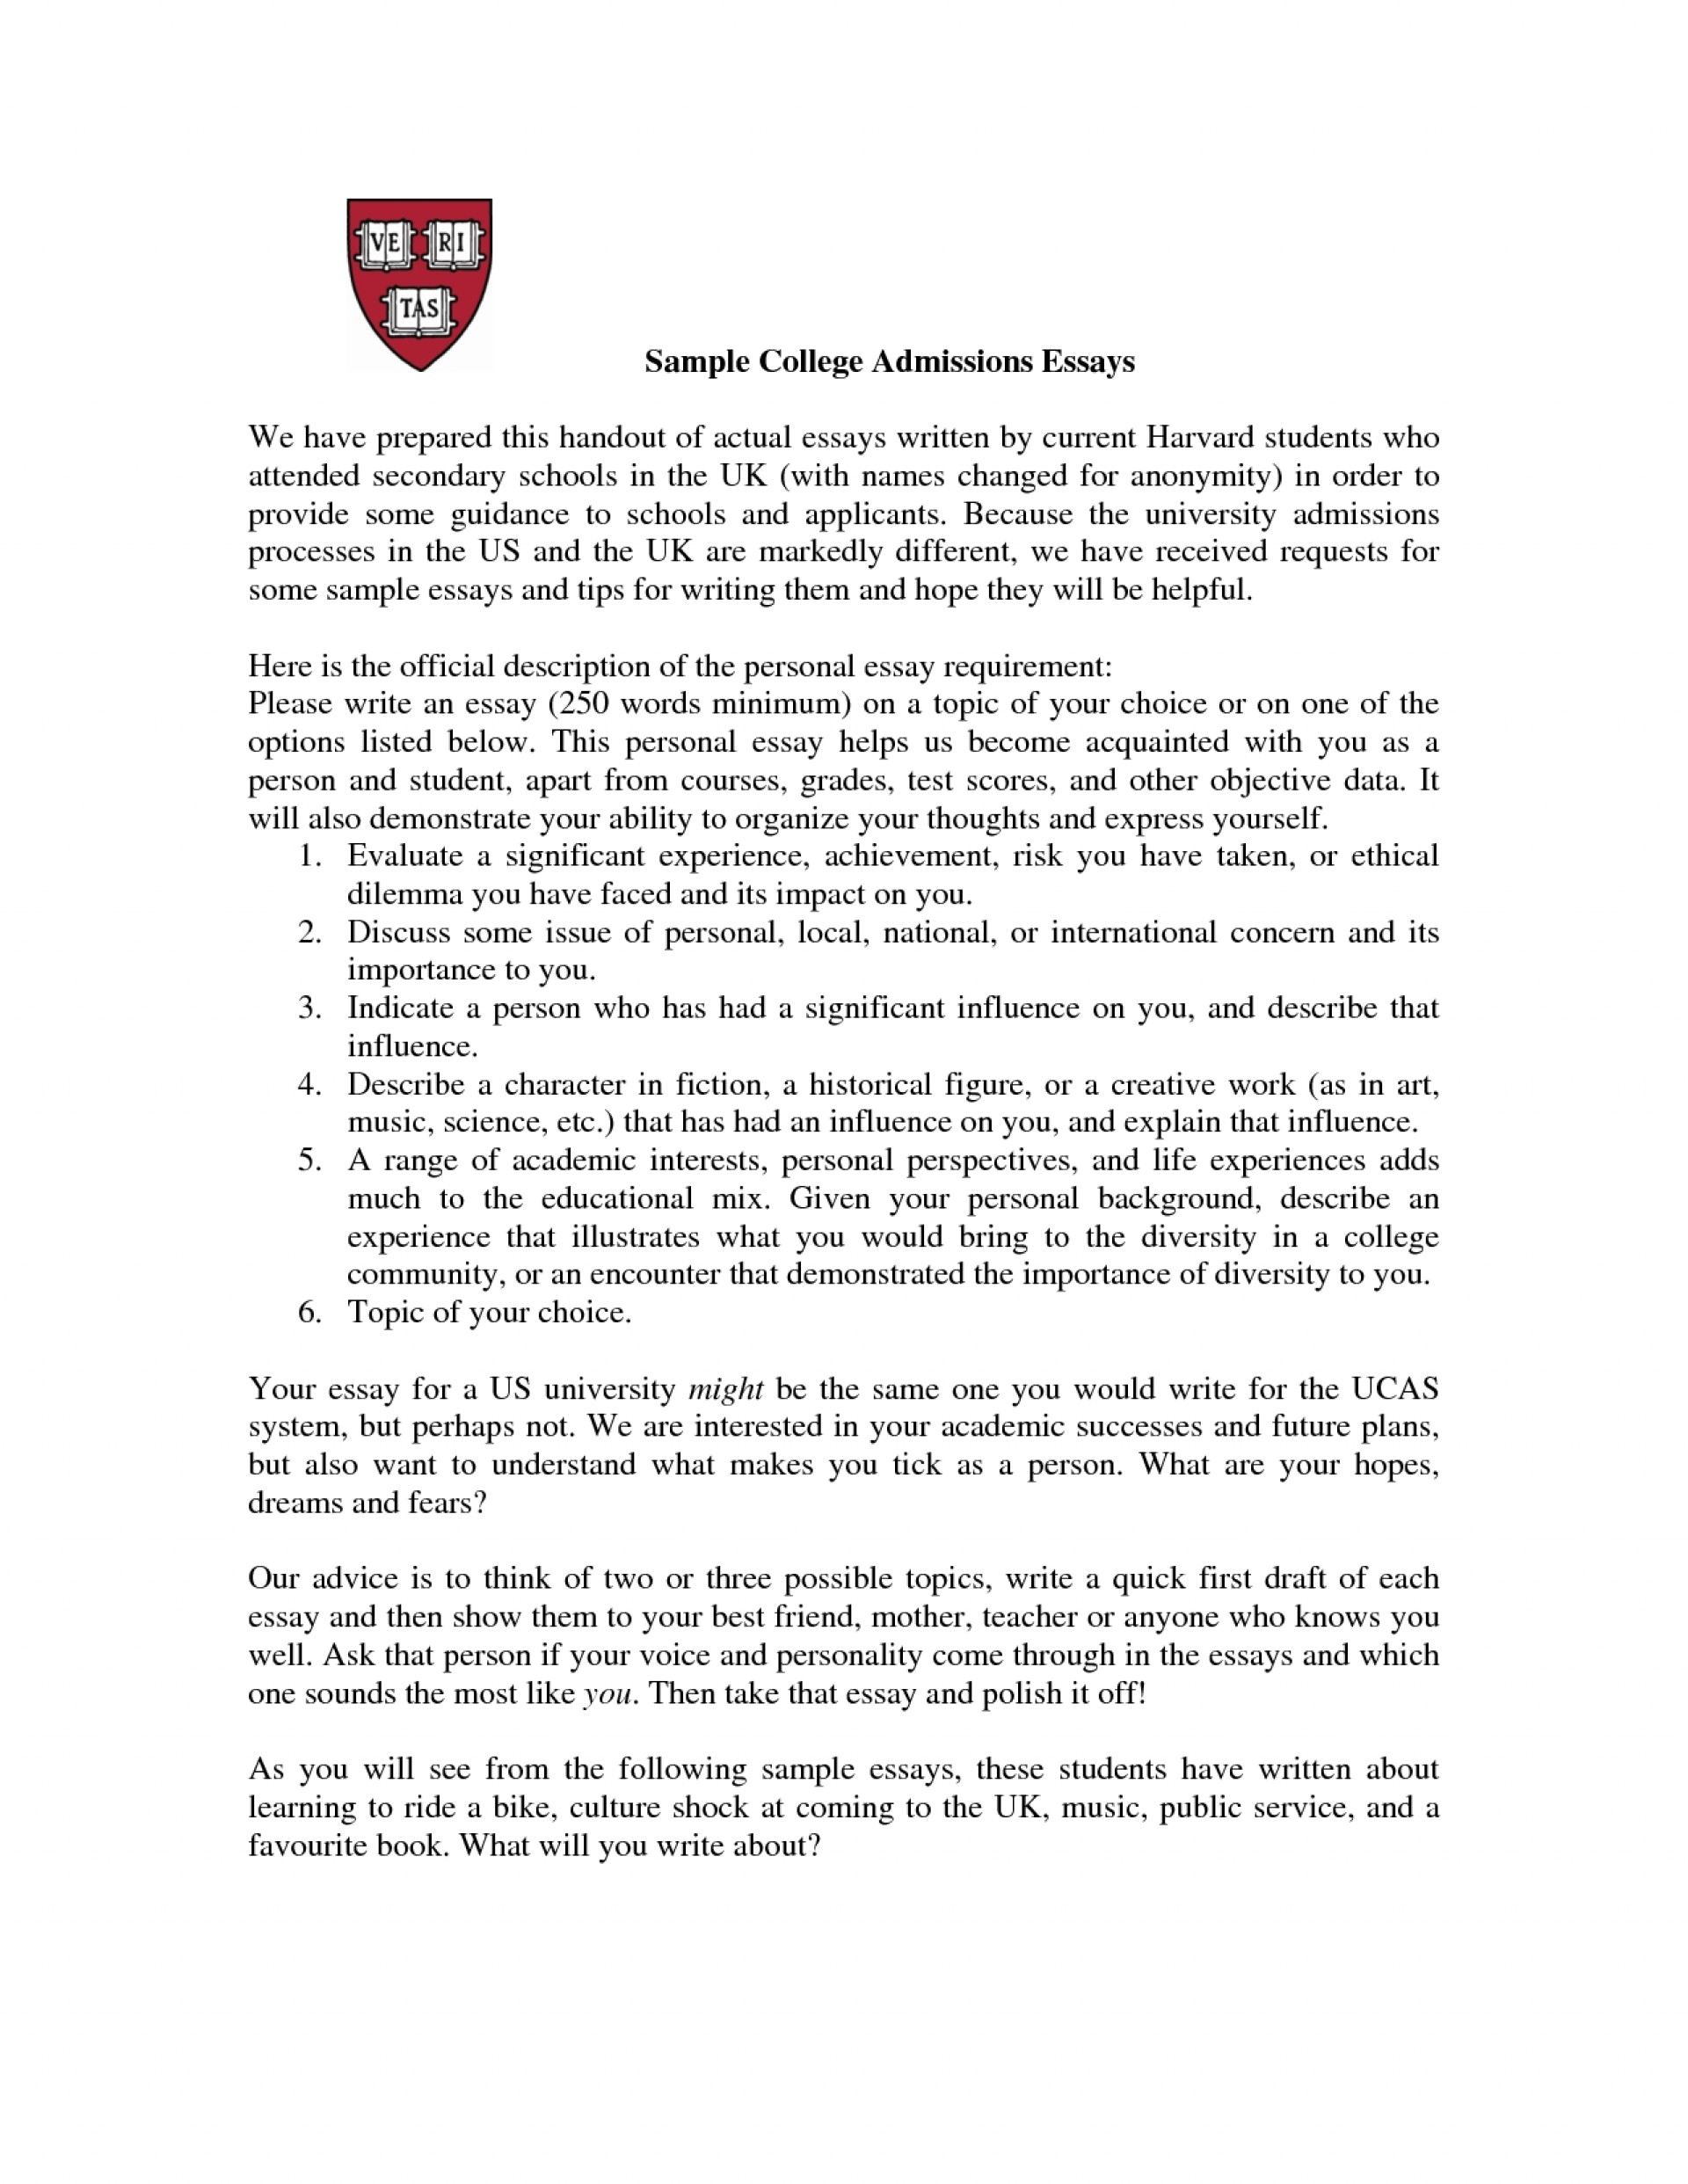 013 Dpy4cpaqnd Essay Example Common App Best Essays Application Examples Harvard Prompts 2014-15 1920